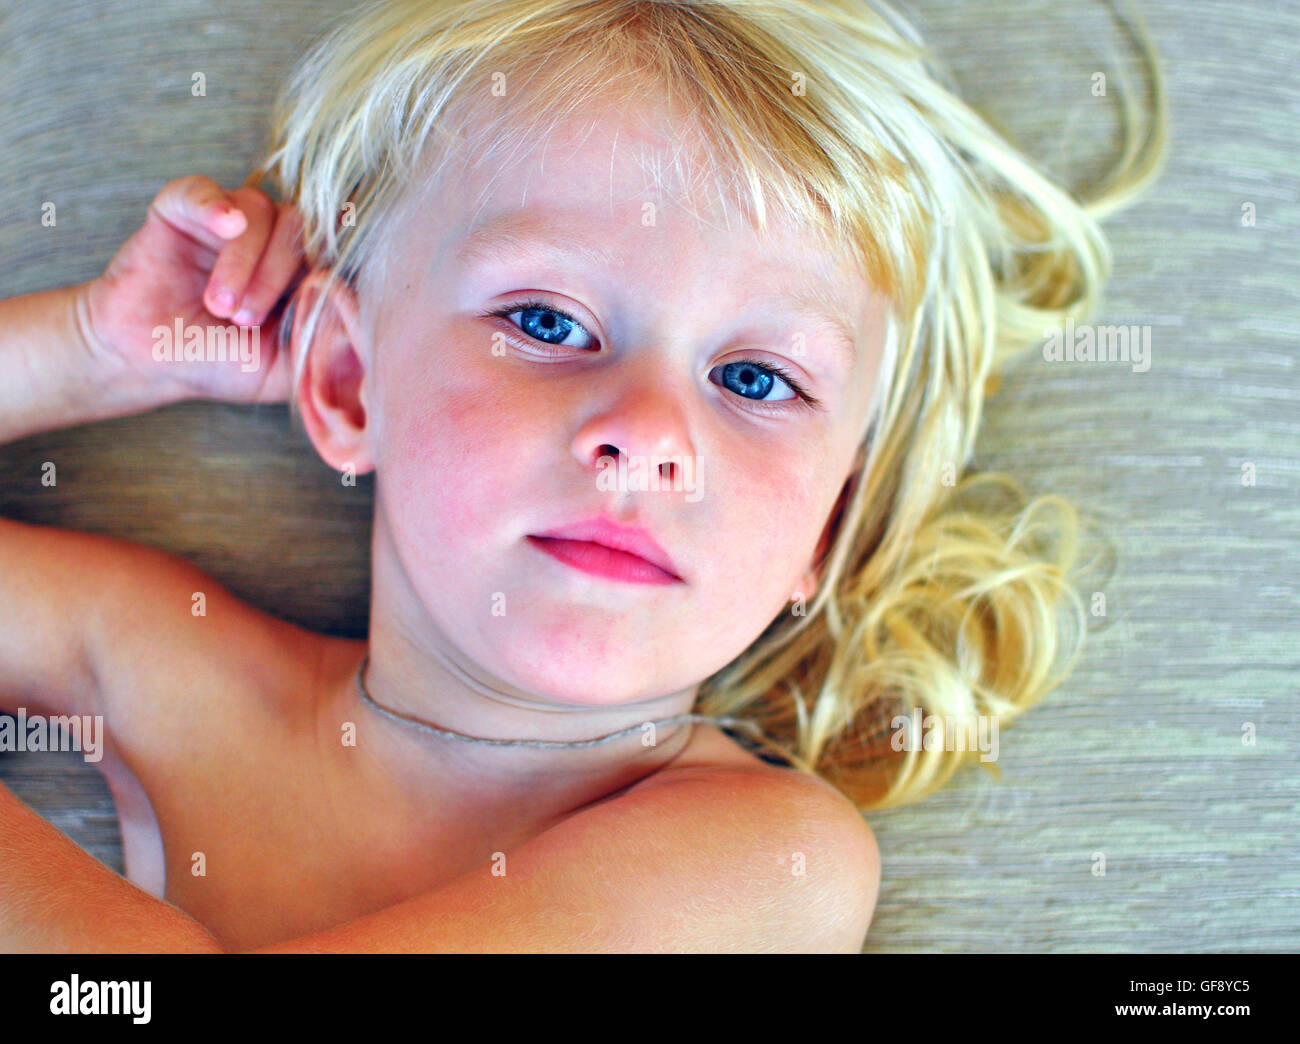 Portrait Of A Little Boy With A Long Blonde Hair Stock Photo